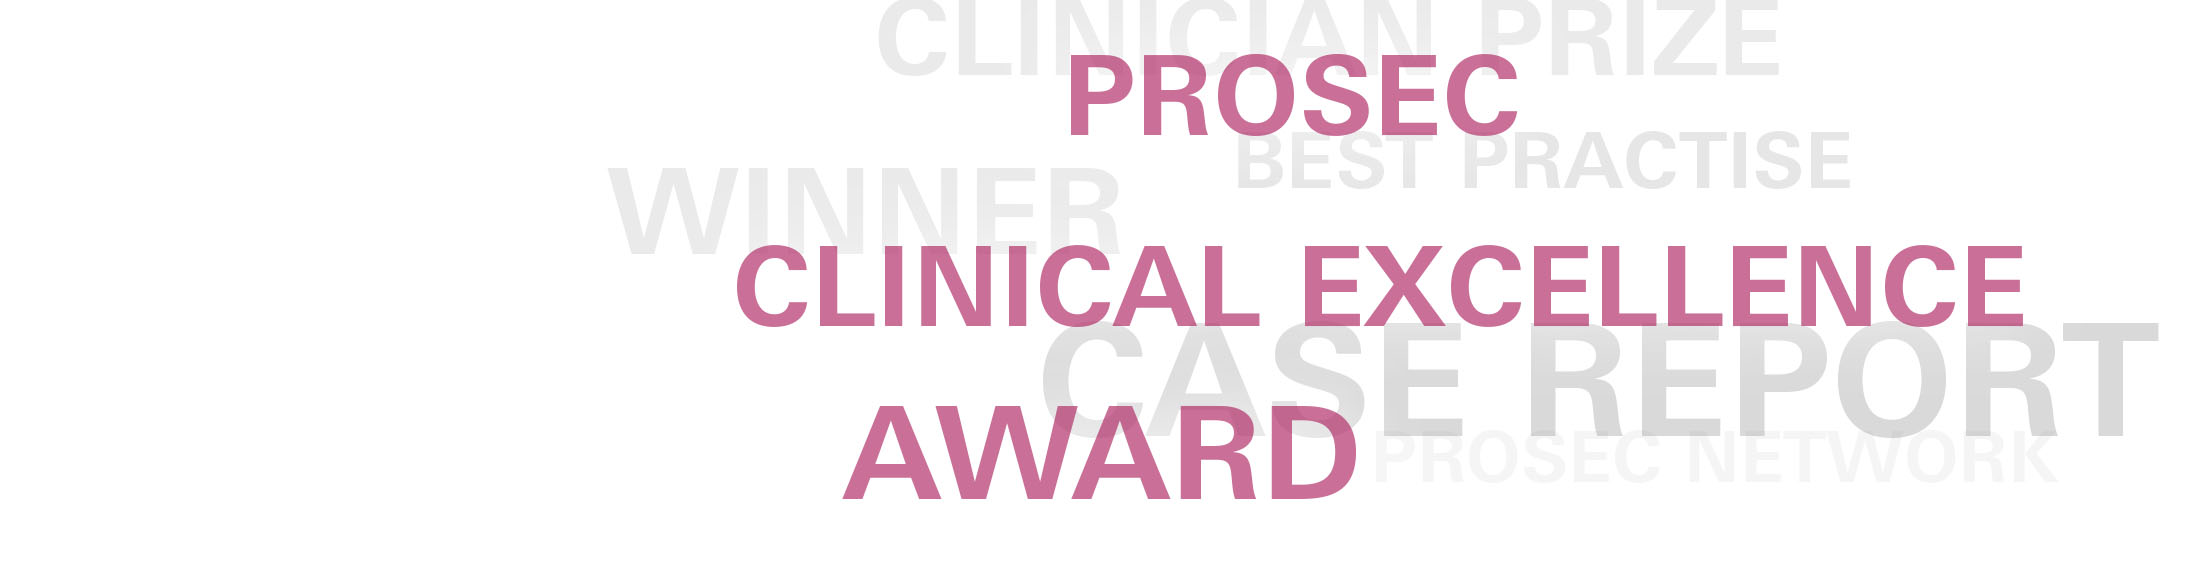 PROSEC Clinical Excellence Award